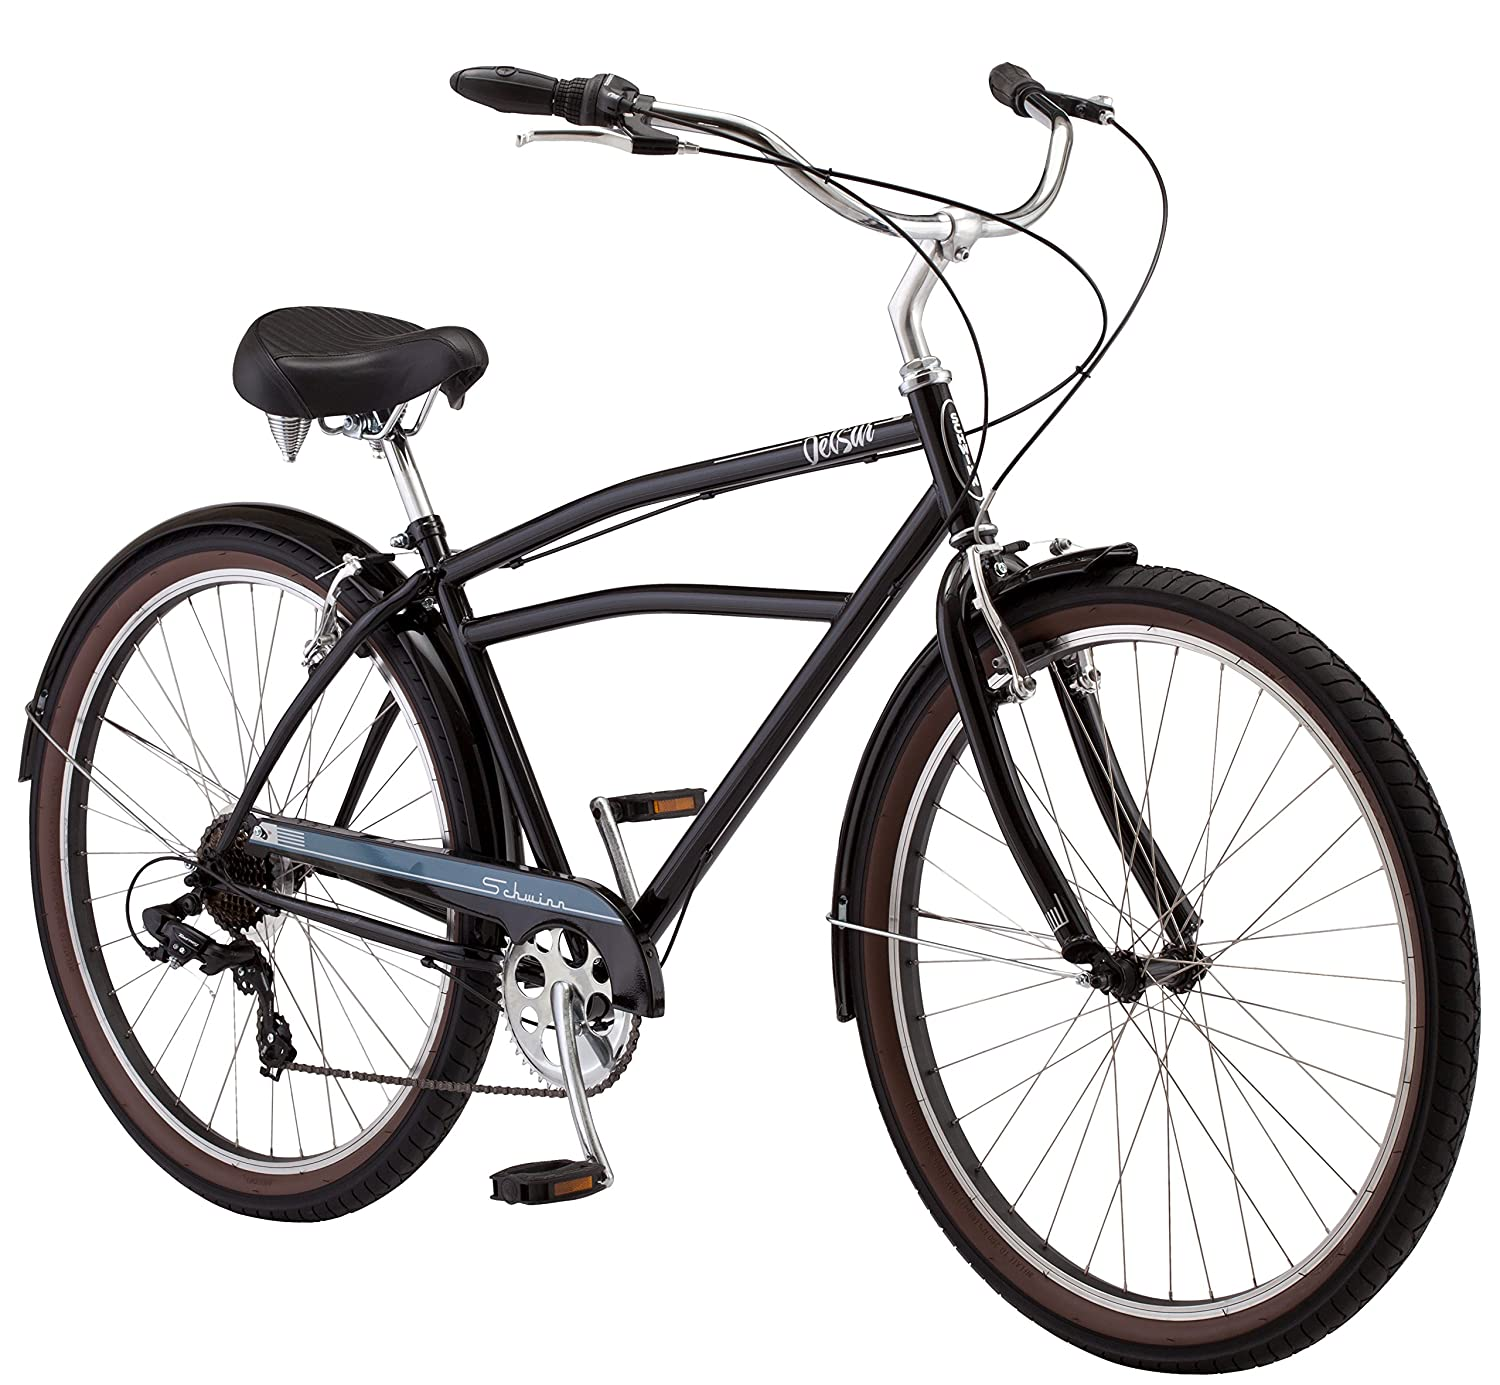 4c6b215d7f8 Amazon.com : Schwinn Del Sur Men's Cruiser Bike, 27.5